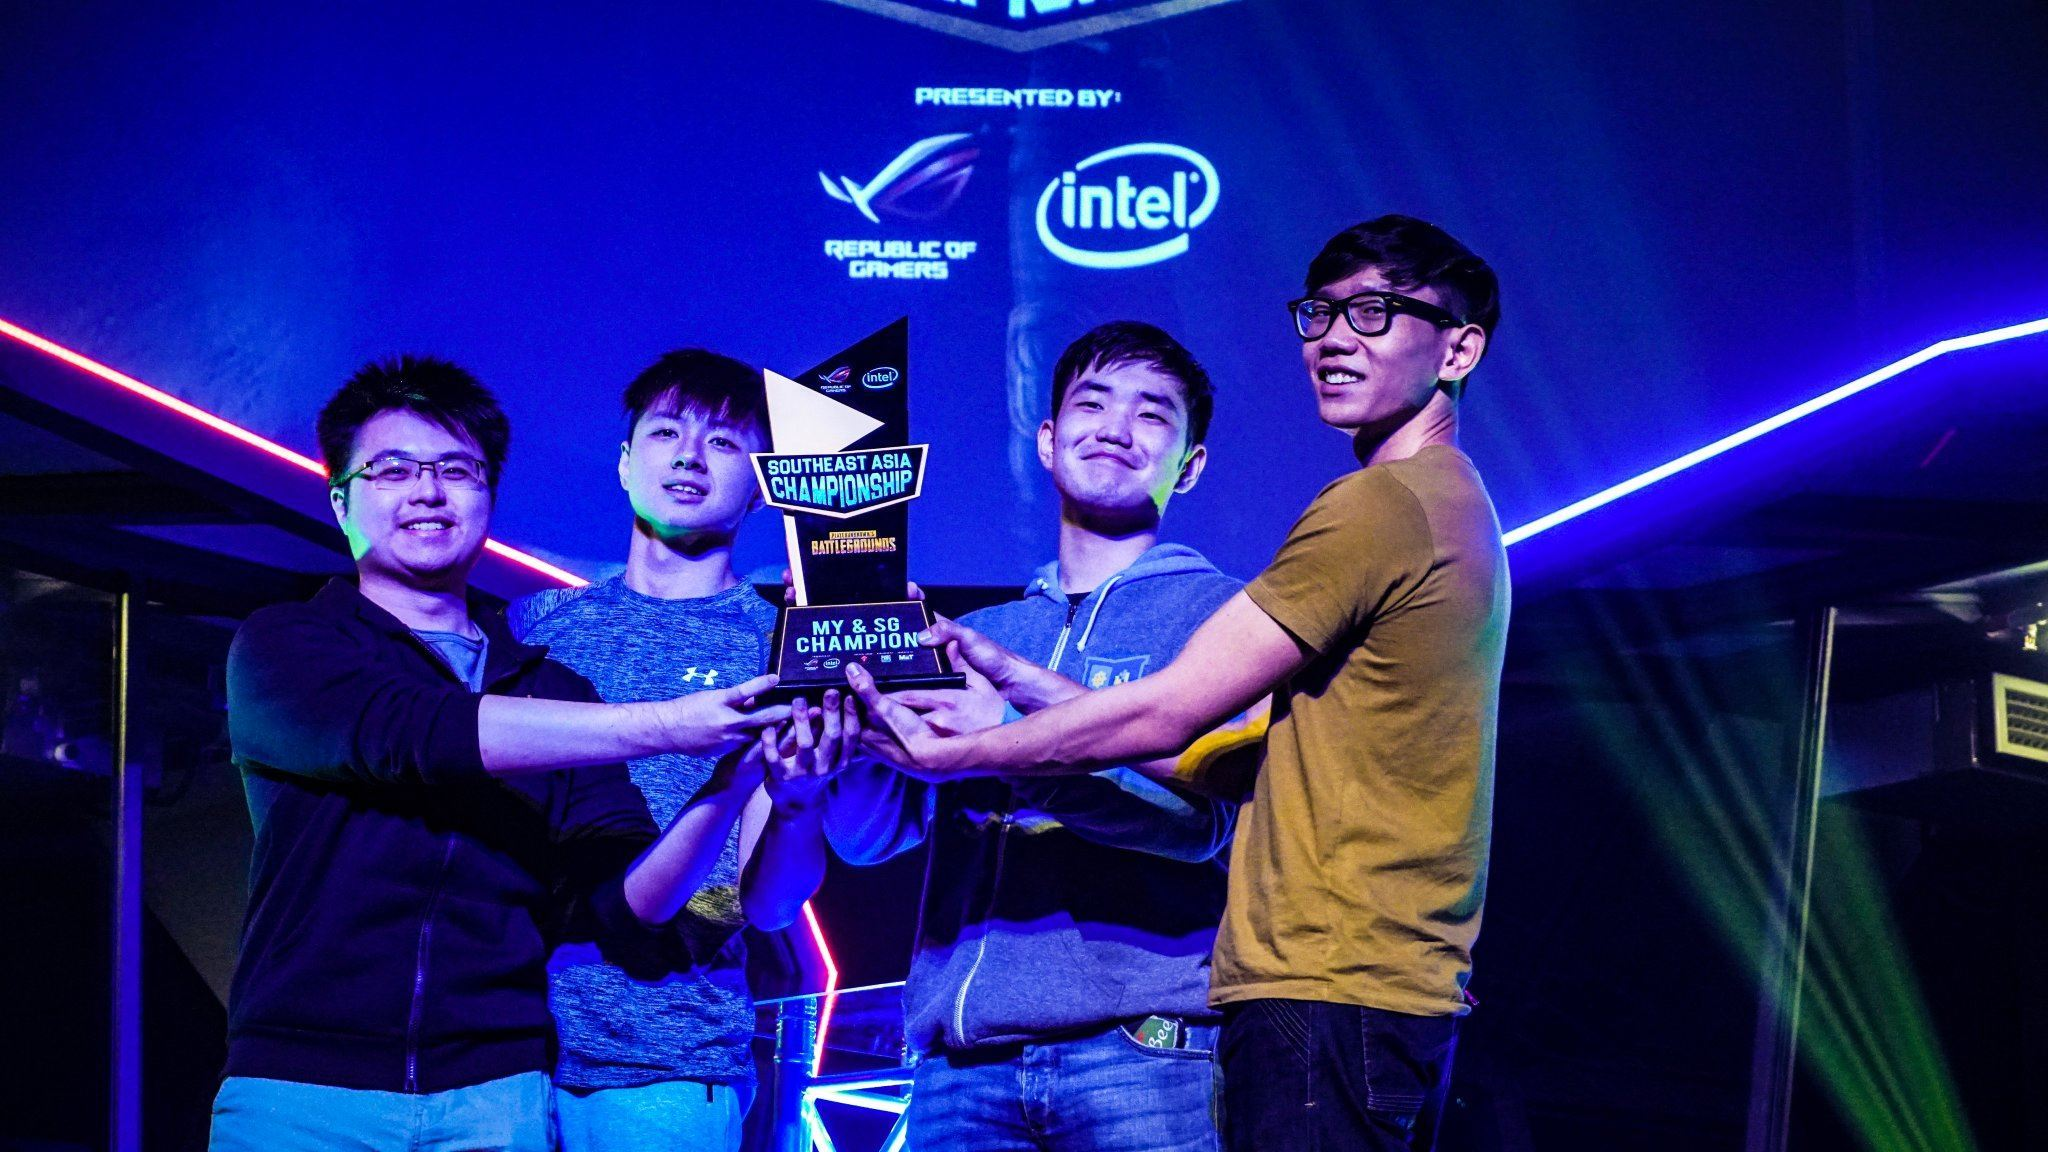 malaysian pubg team battle their way to the world championships!